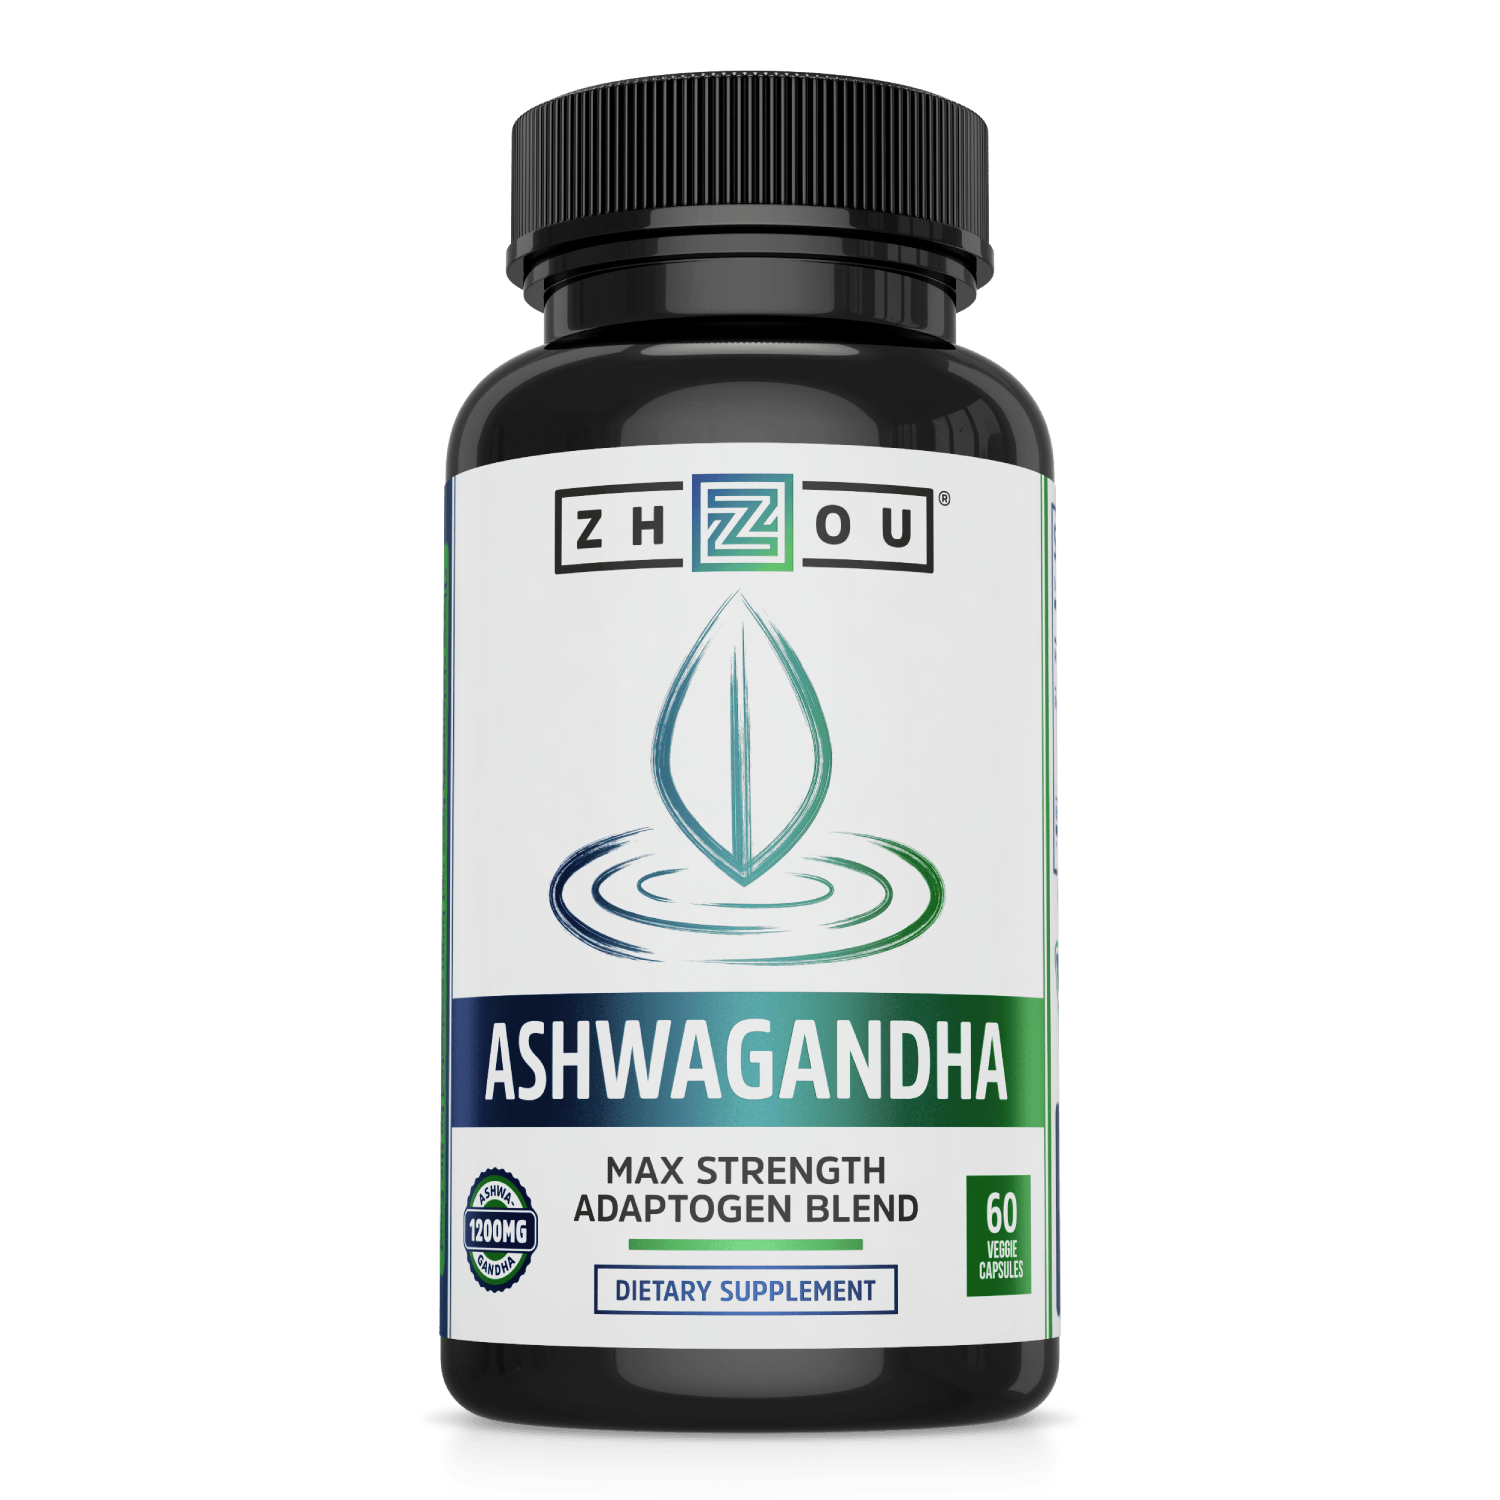 Zhou Nutrition Ashwagandha Adaptogen Blend. Bottle front.